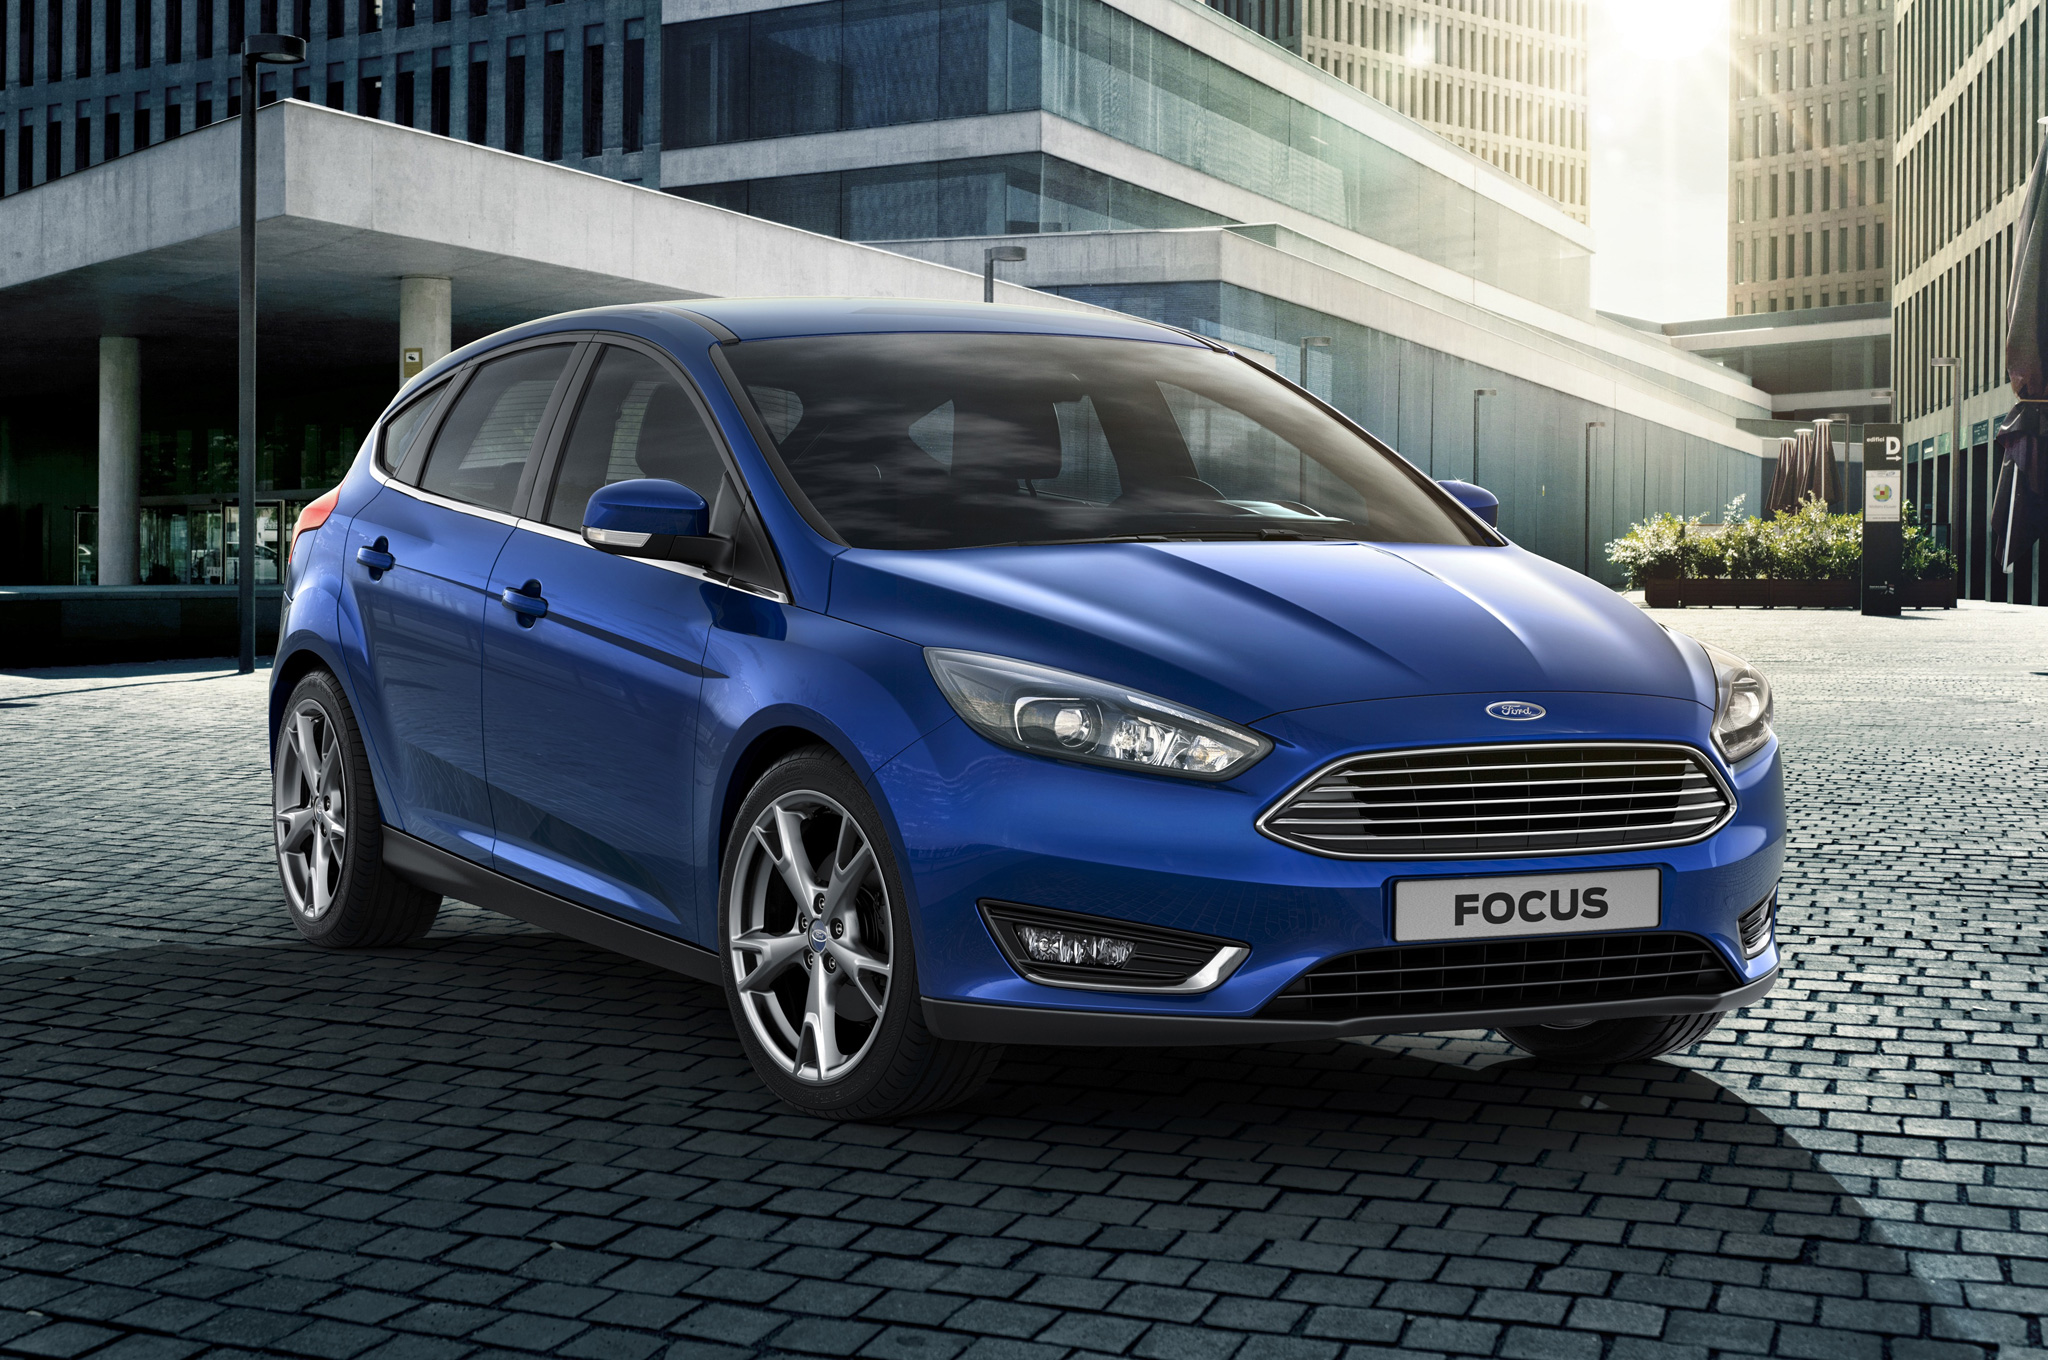 2015-ford-focus-hatchback--front-side-view